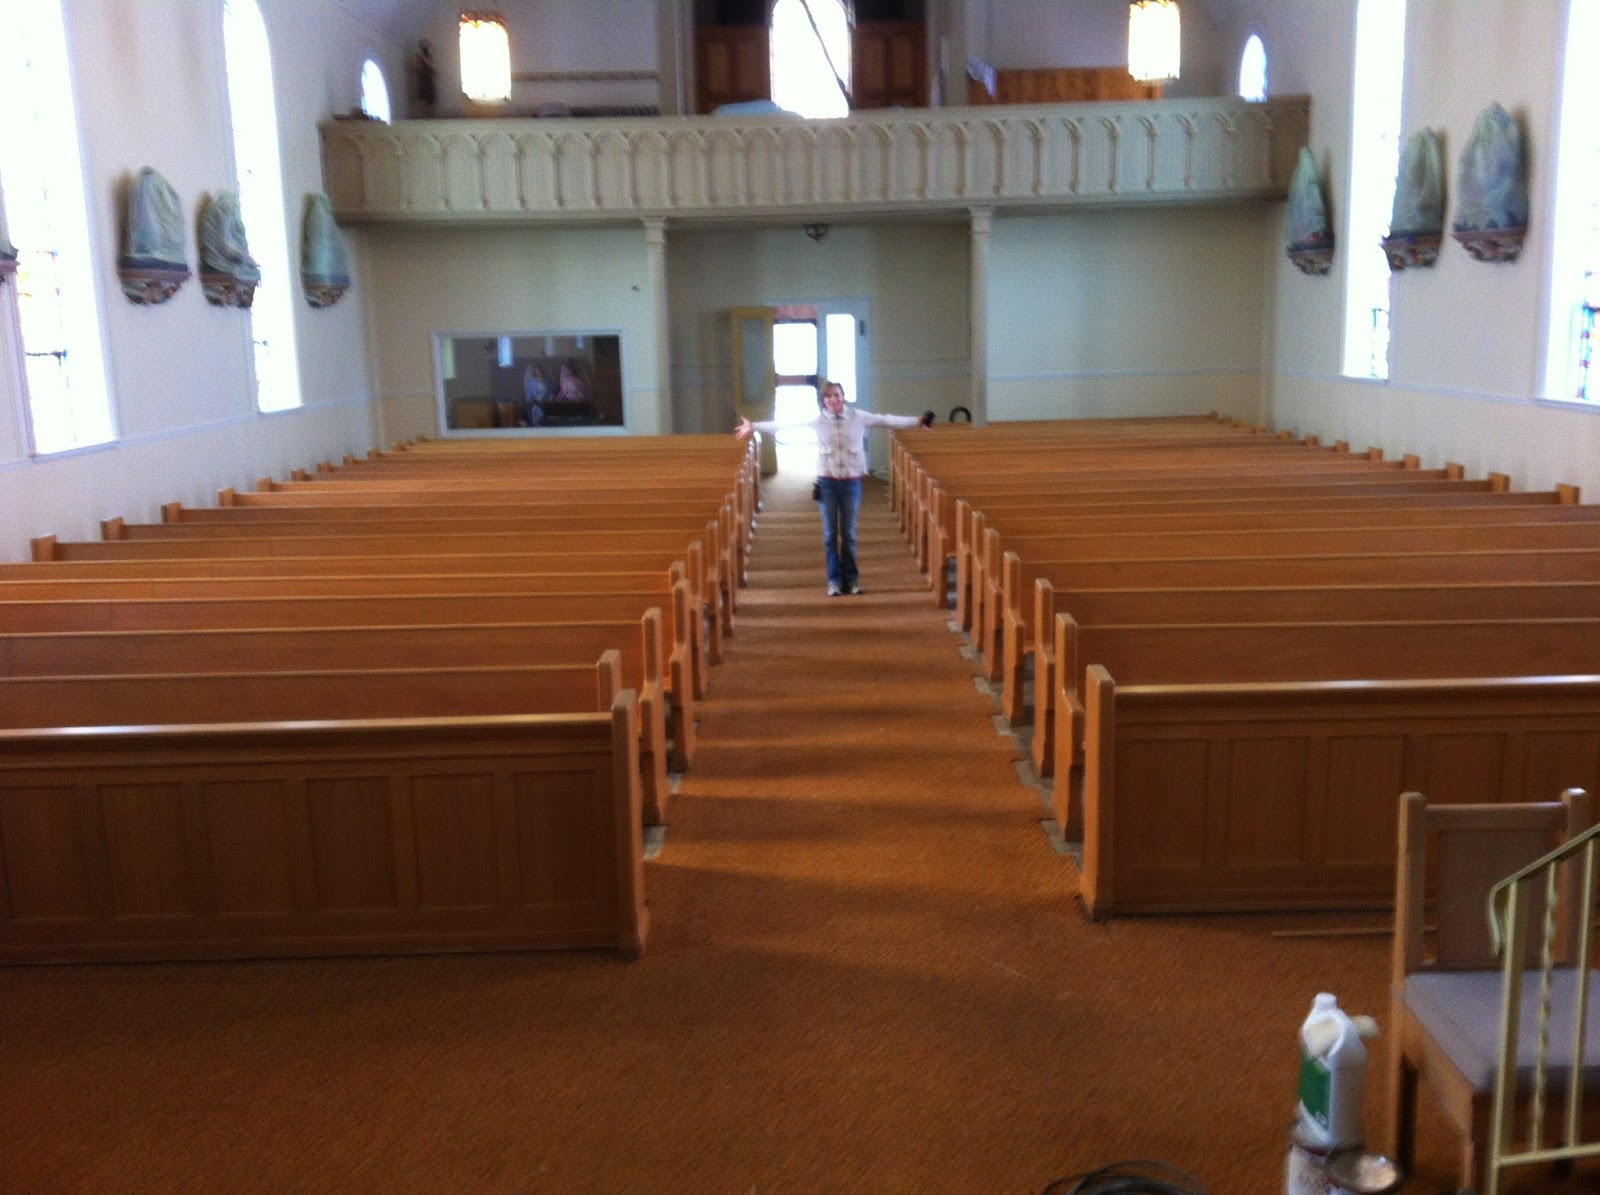 Church Pew Restoration And Refinishing Church Pew Refinishing Bid Estimate What We Will Need